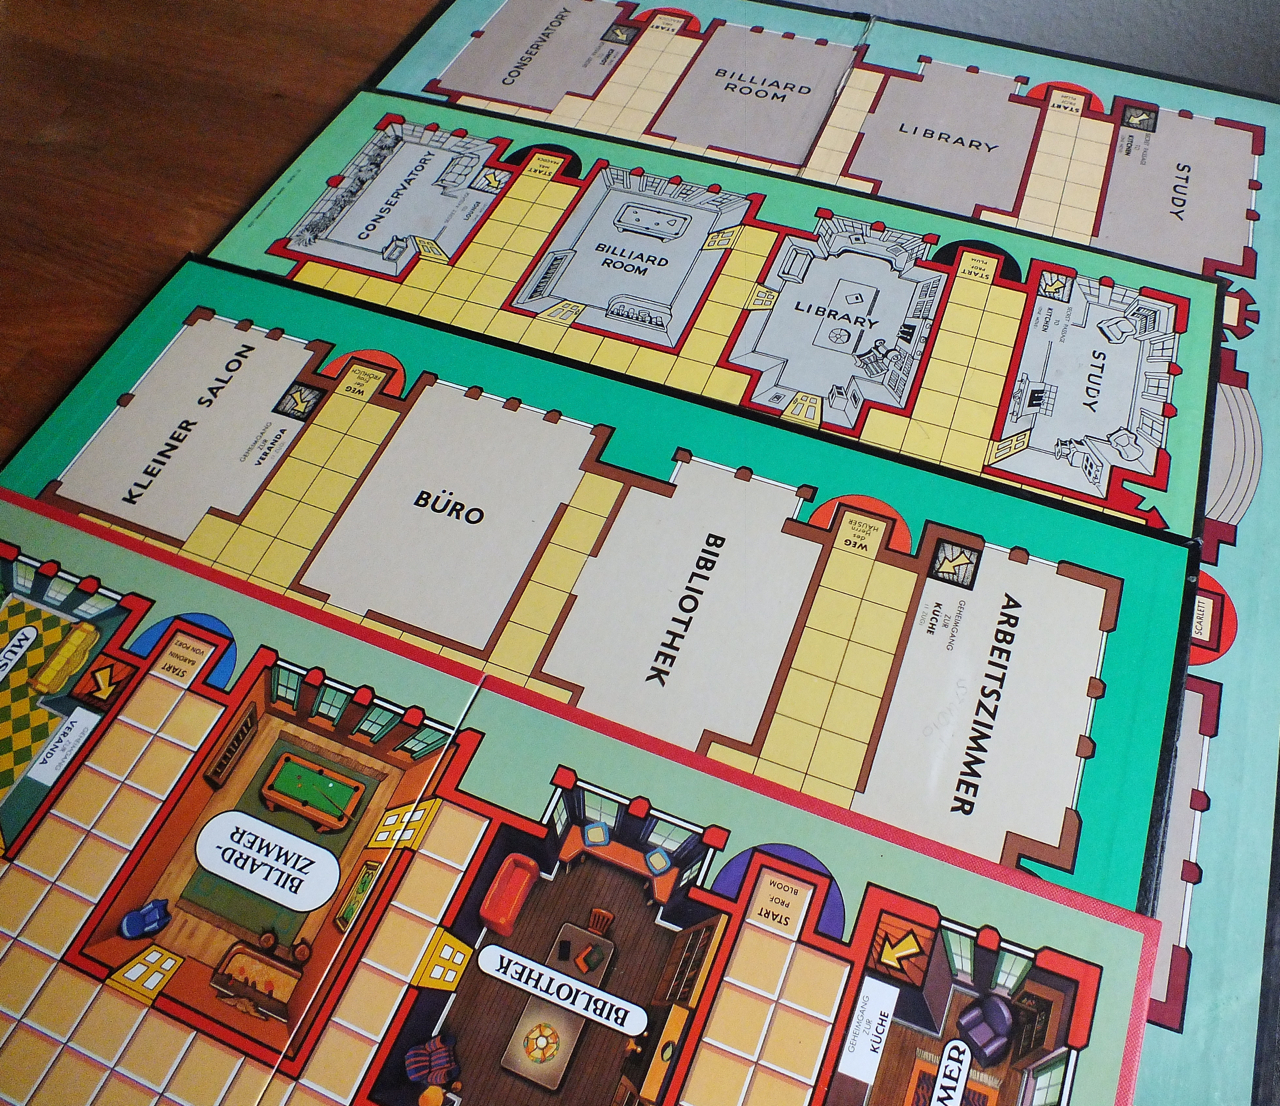 Does anyone know about the Cluedo board game